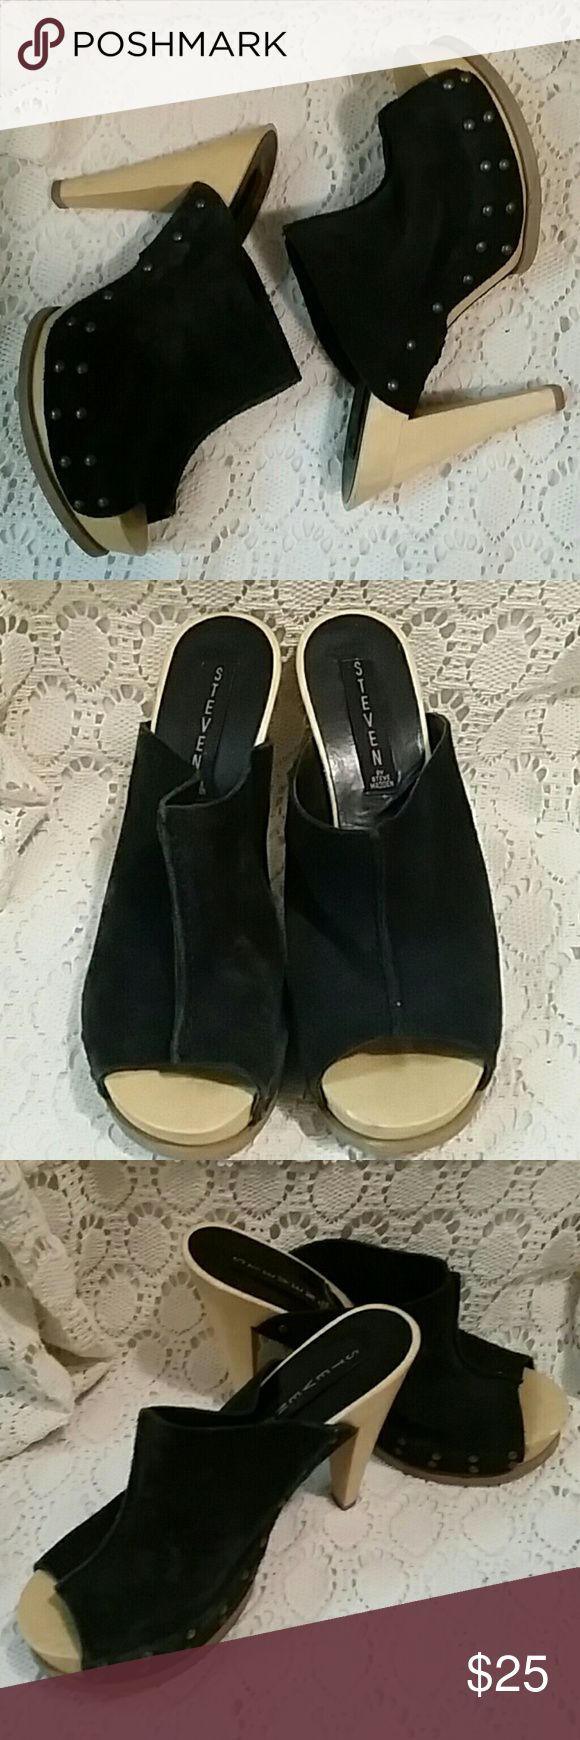 Steve Madden Suade Clogs Black Suade Steve Madden Clogs/Mules... Excellent Condition 4inch Heel Steven by Steve Madden Shoes Mules & Clogs